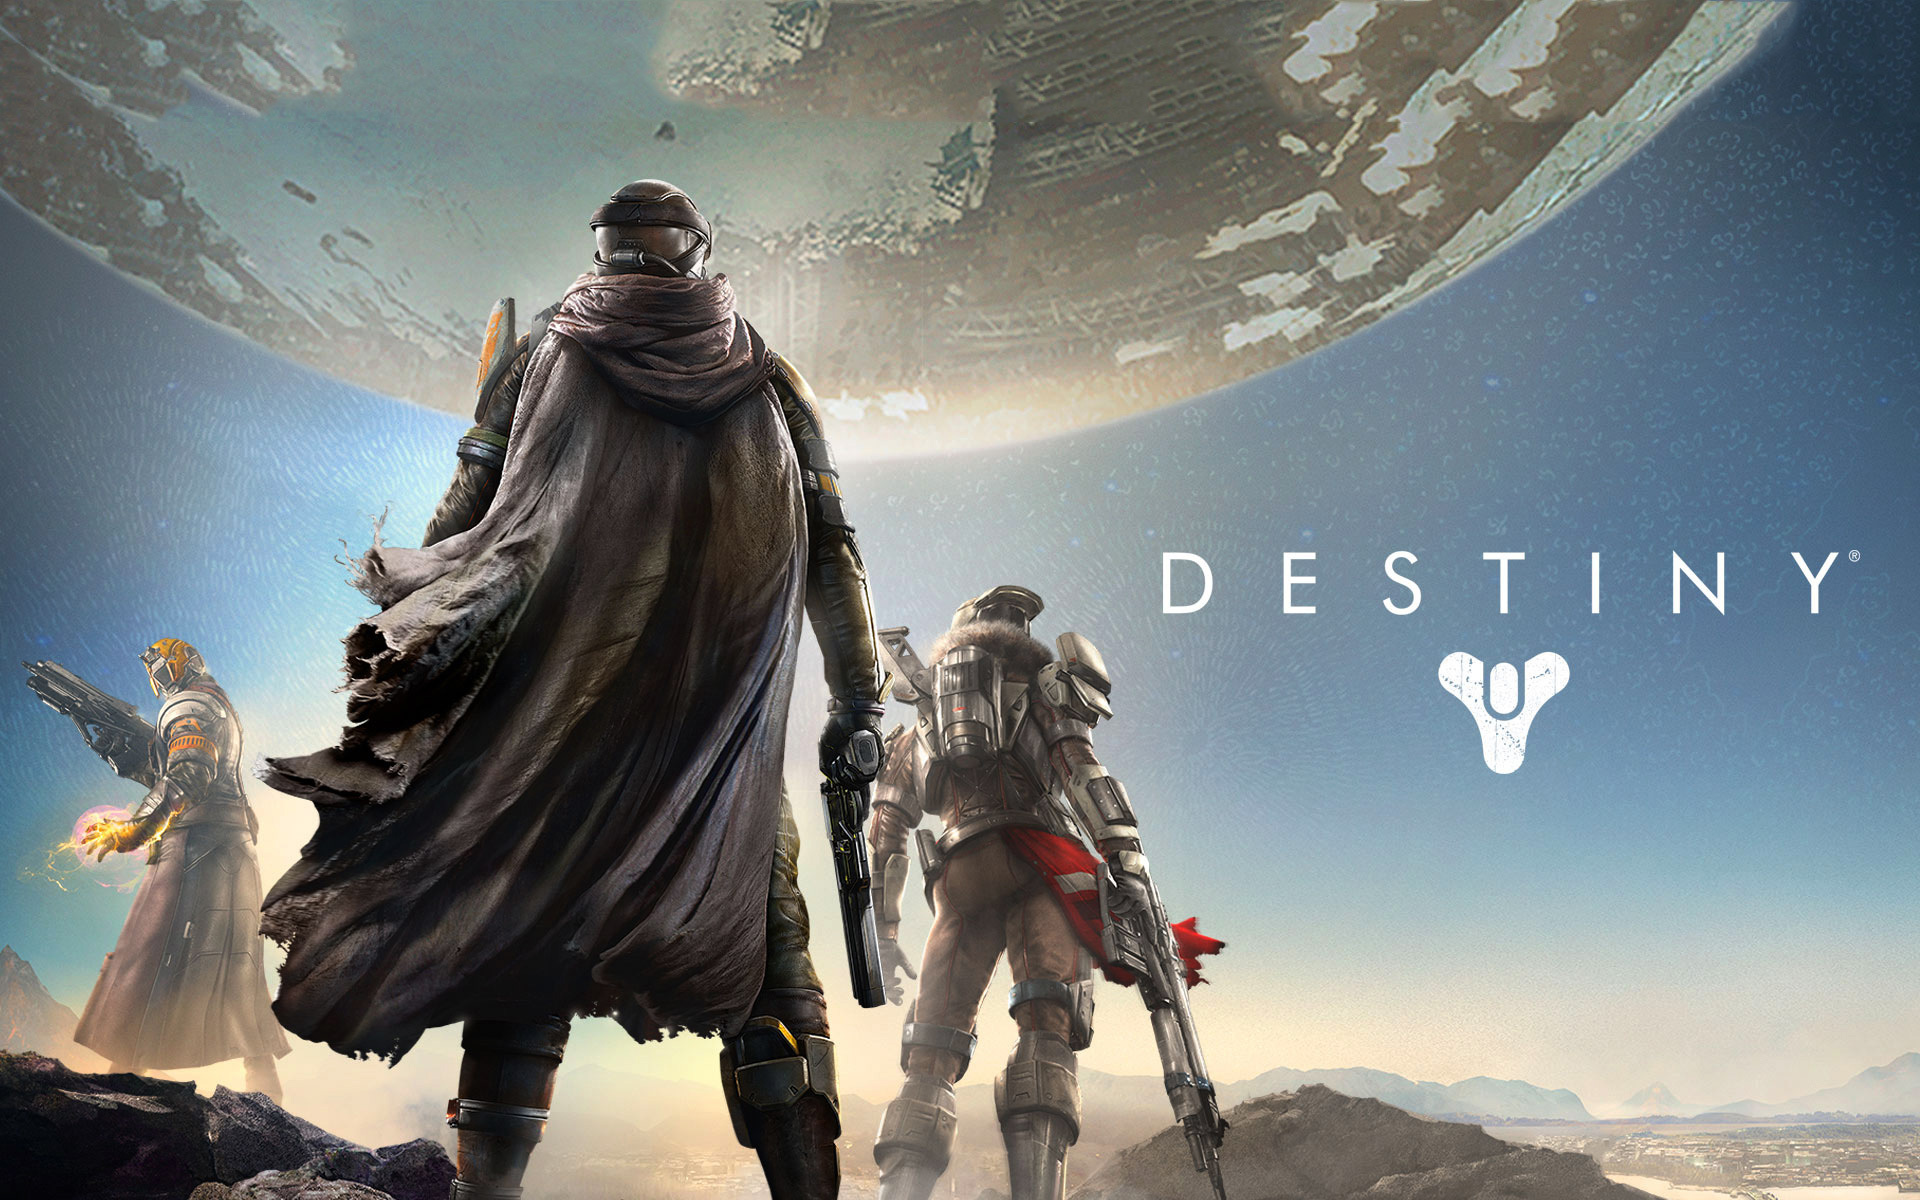 Destiny 2014 Game Wallpapers HD Wallpapers 1920x1200